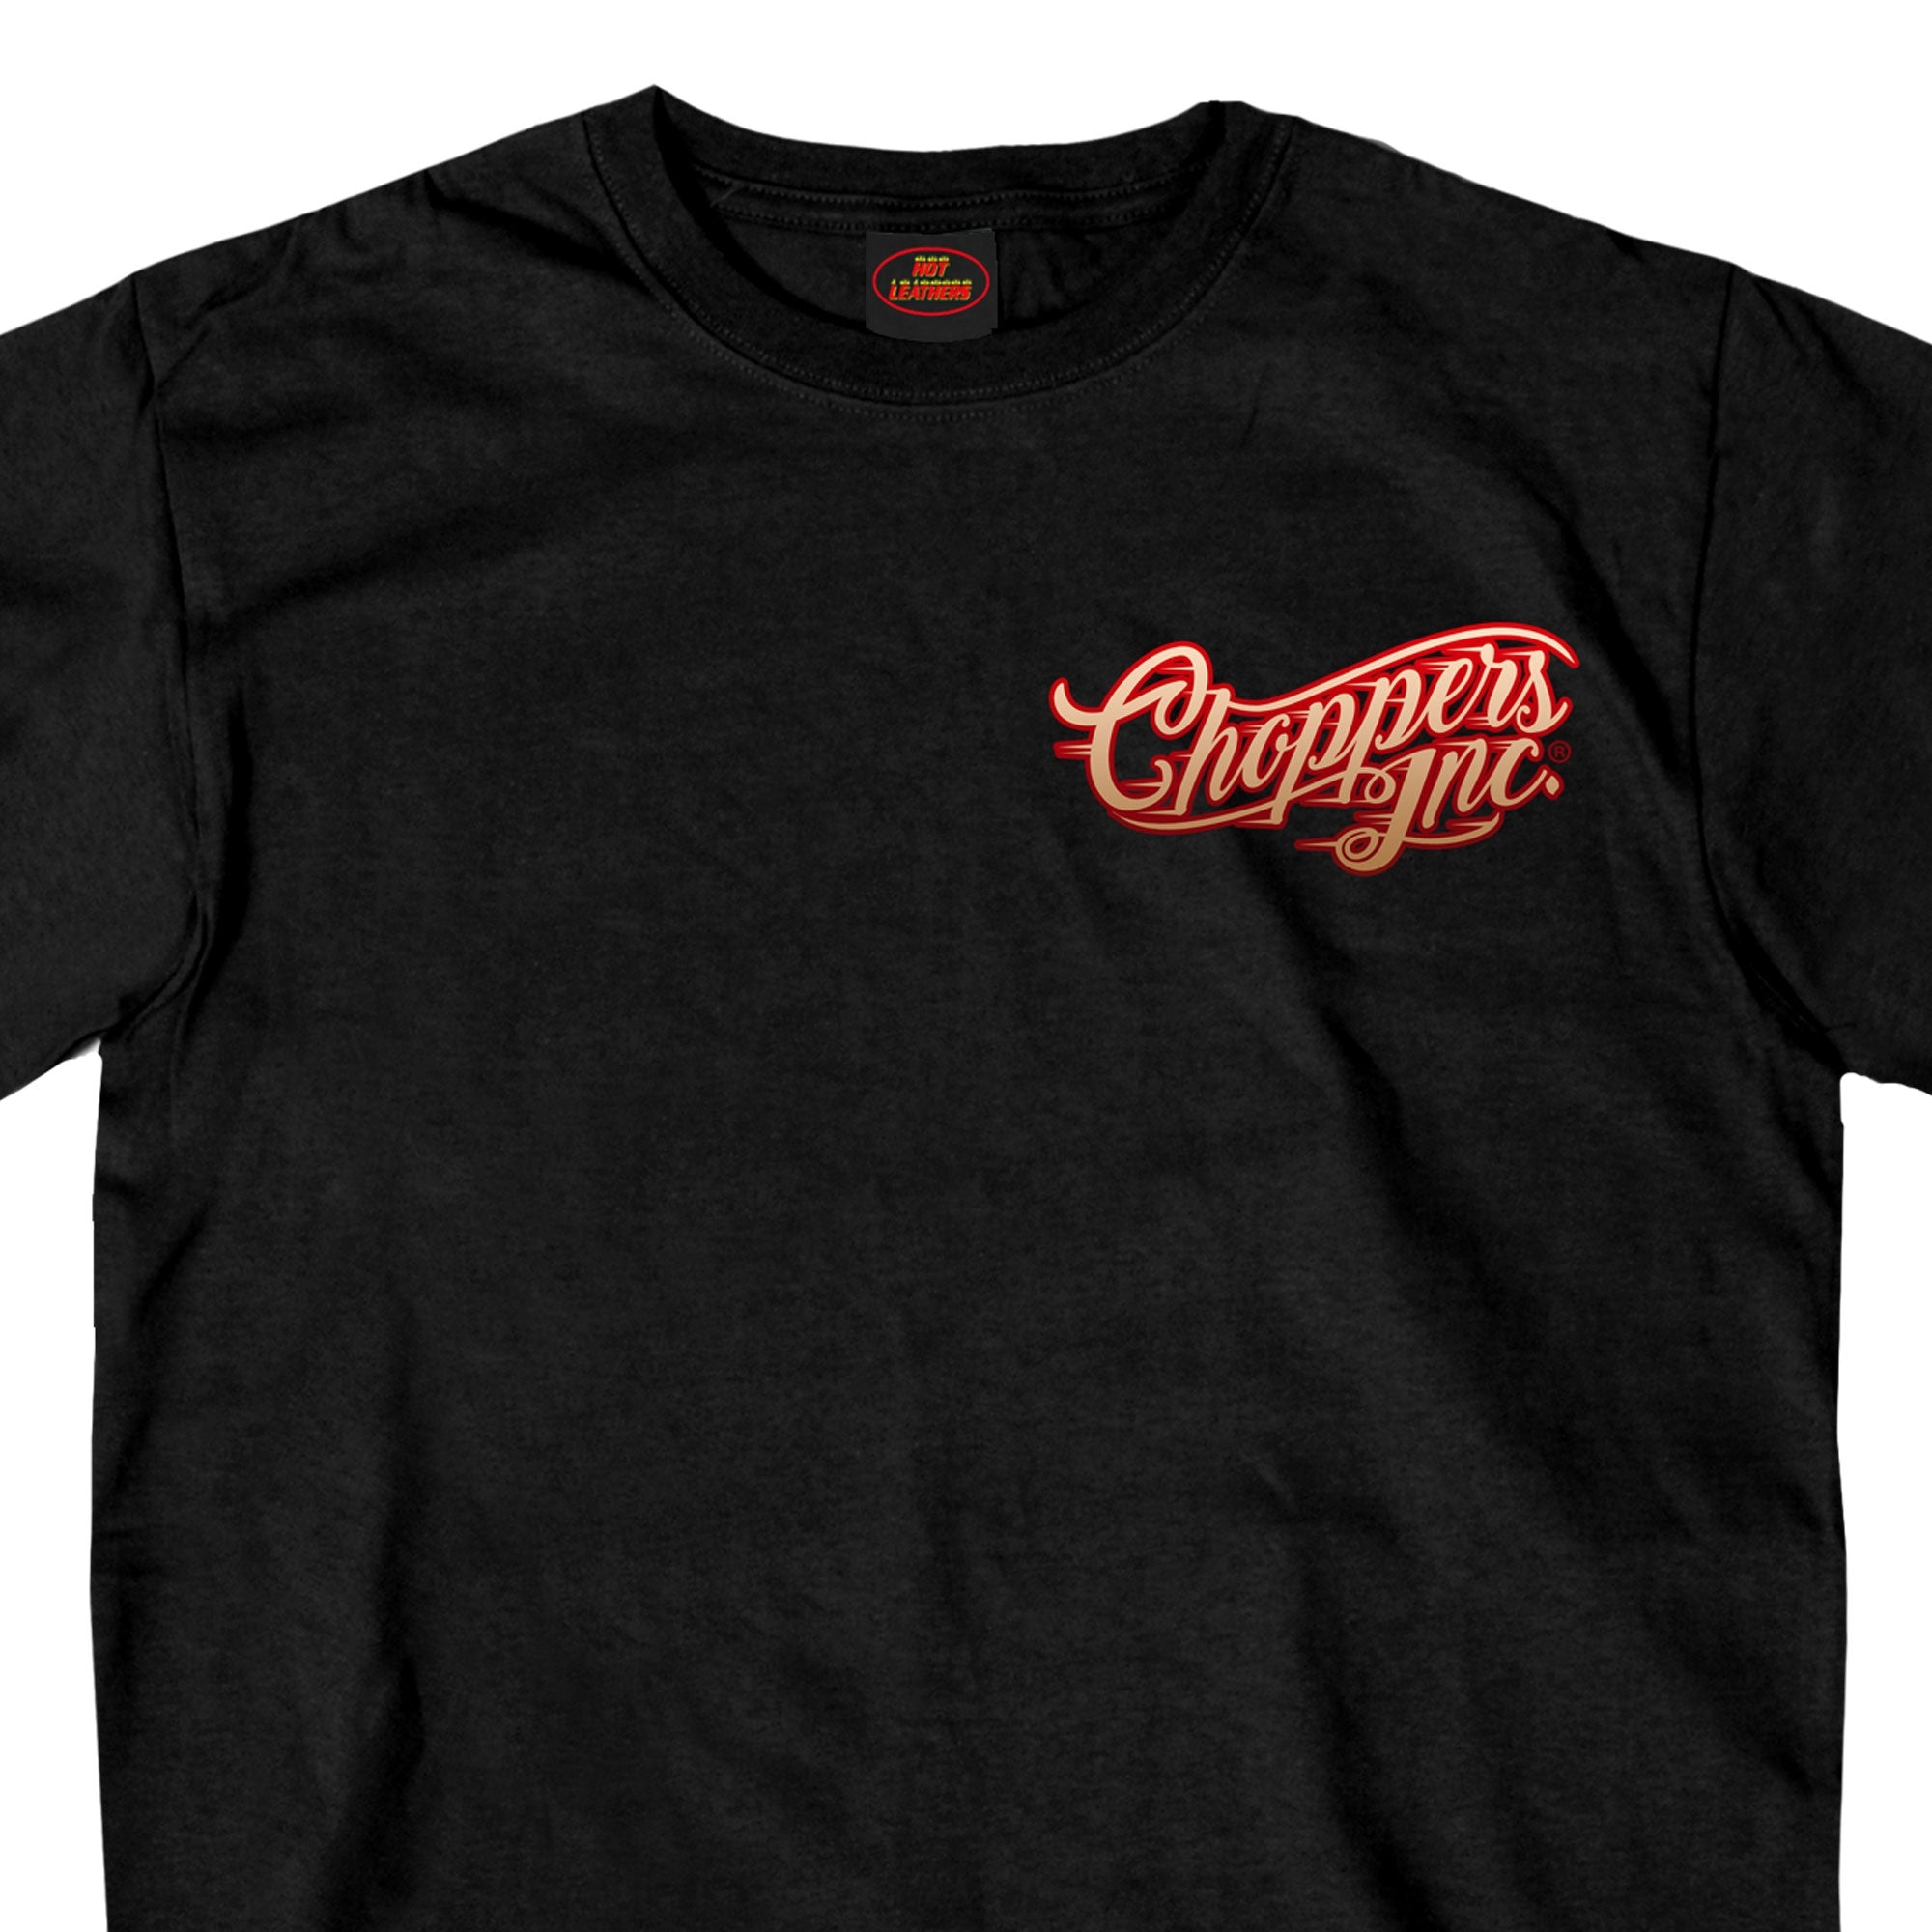 Official Billy Lane's Choppers Inc Pin Up Racer T-Shirt